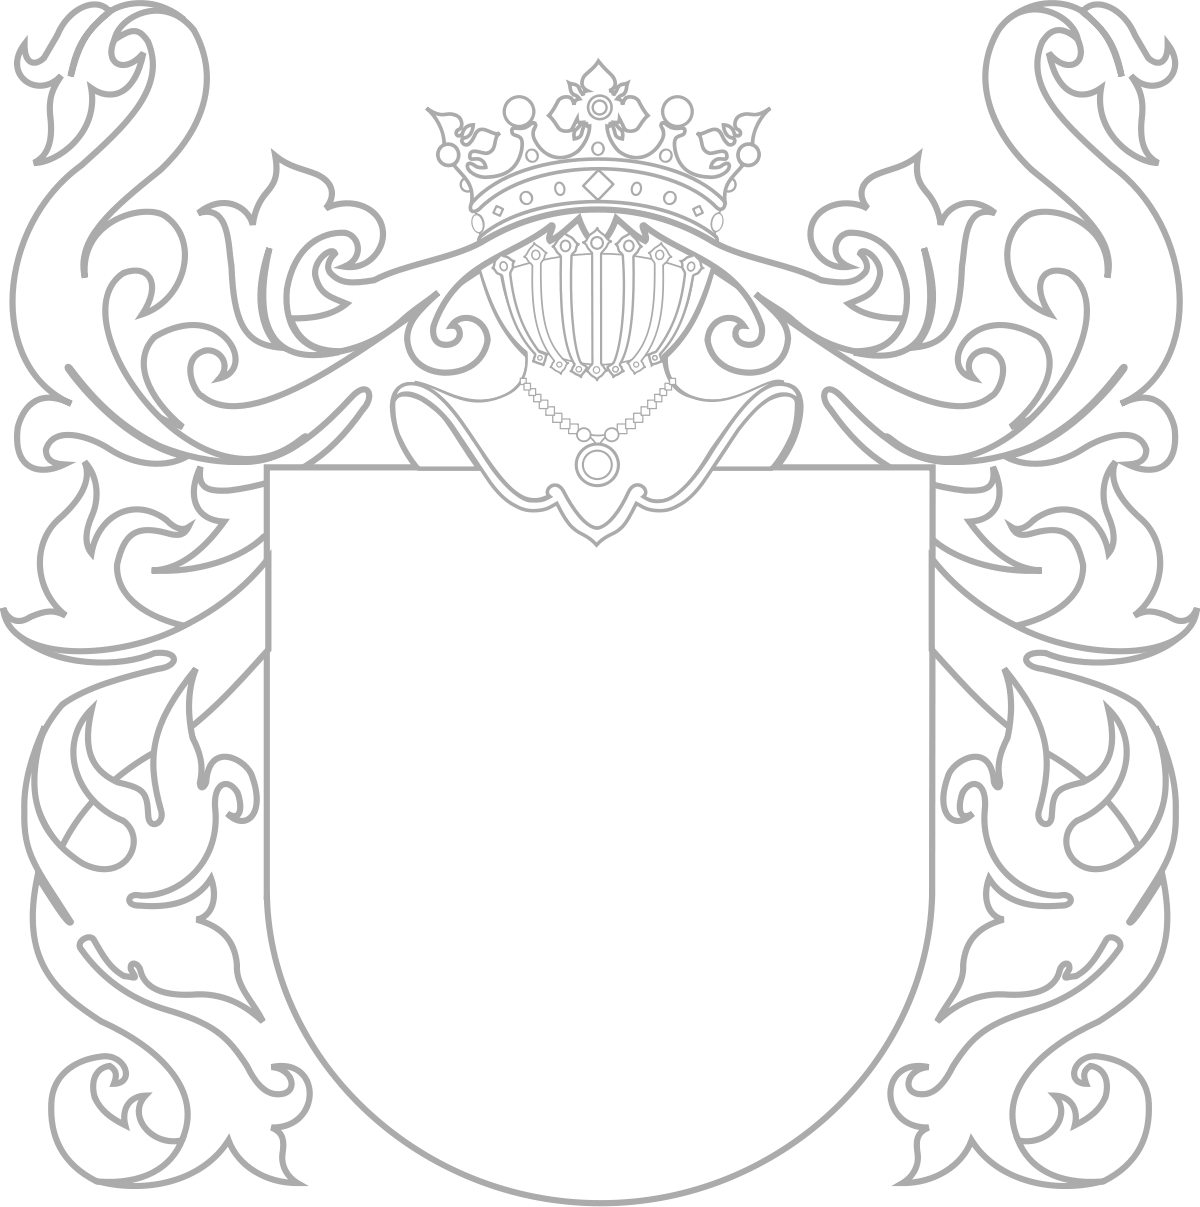 Fancy Coat Of Arms Template Google Search Family Crest Template Medieval Banner Coat Of Arms